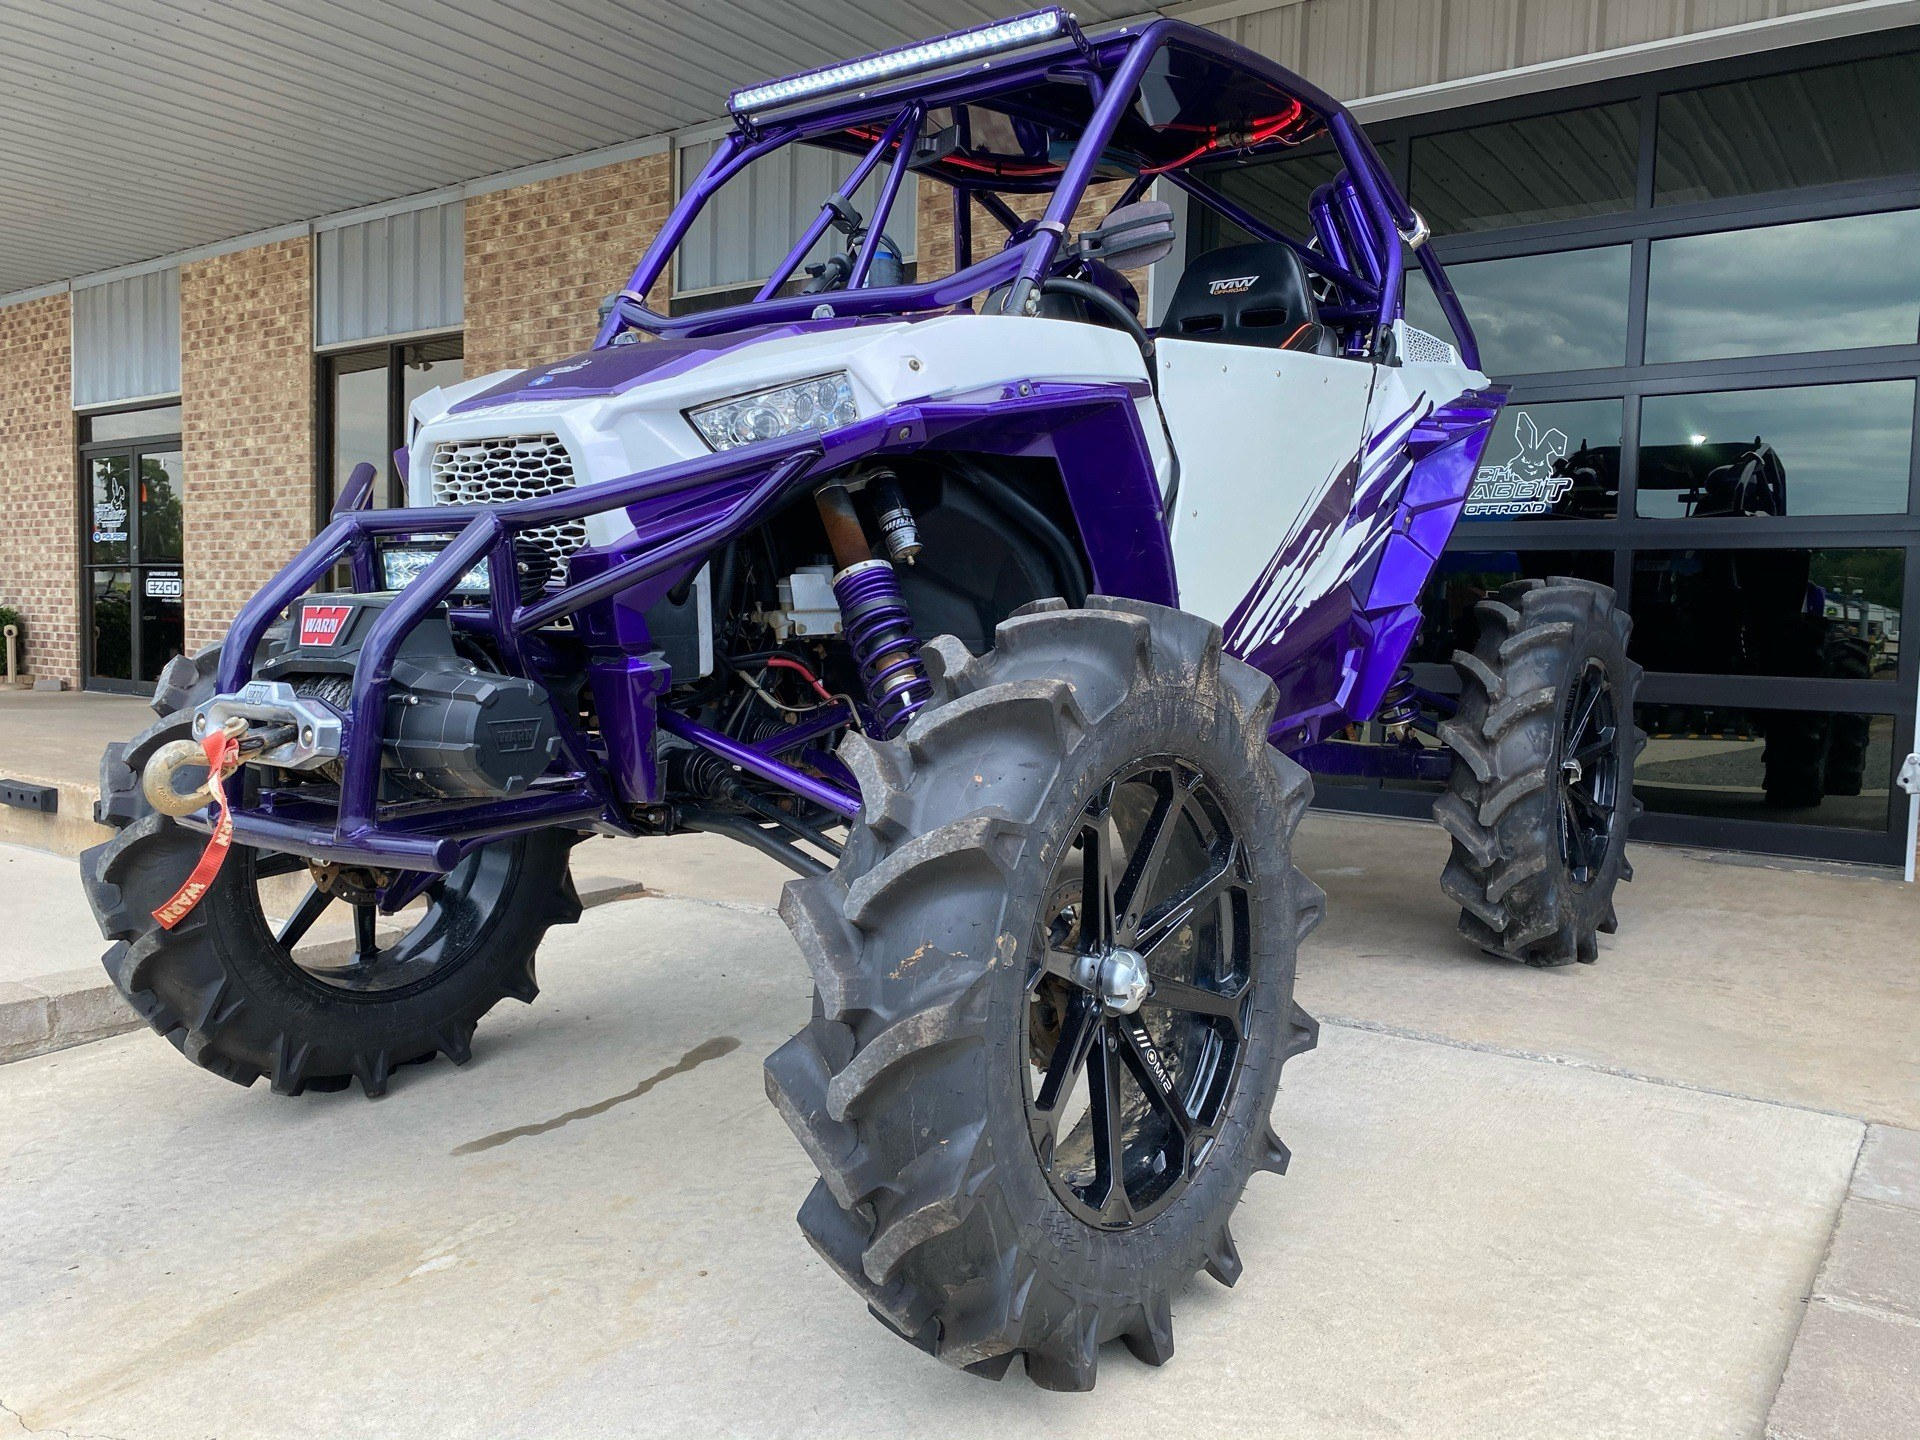 2014 Polaris RZR® XP 1000 EPS in Marshall, Texas - Photo 1